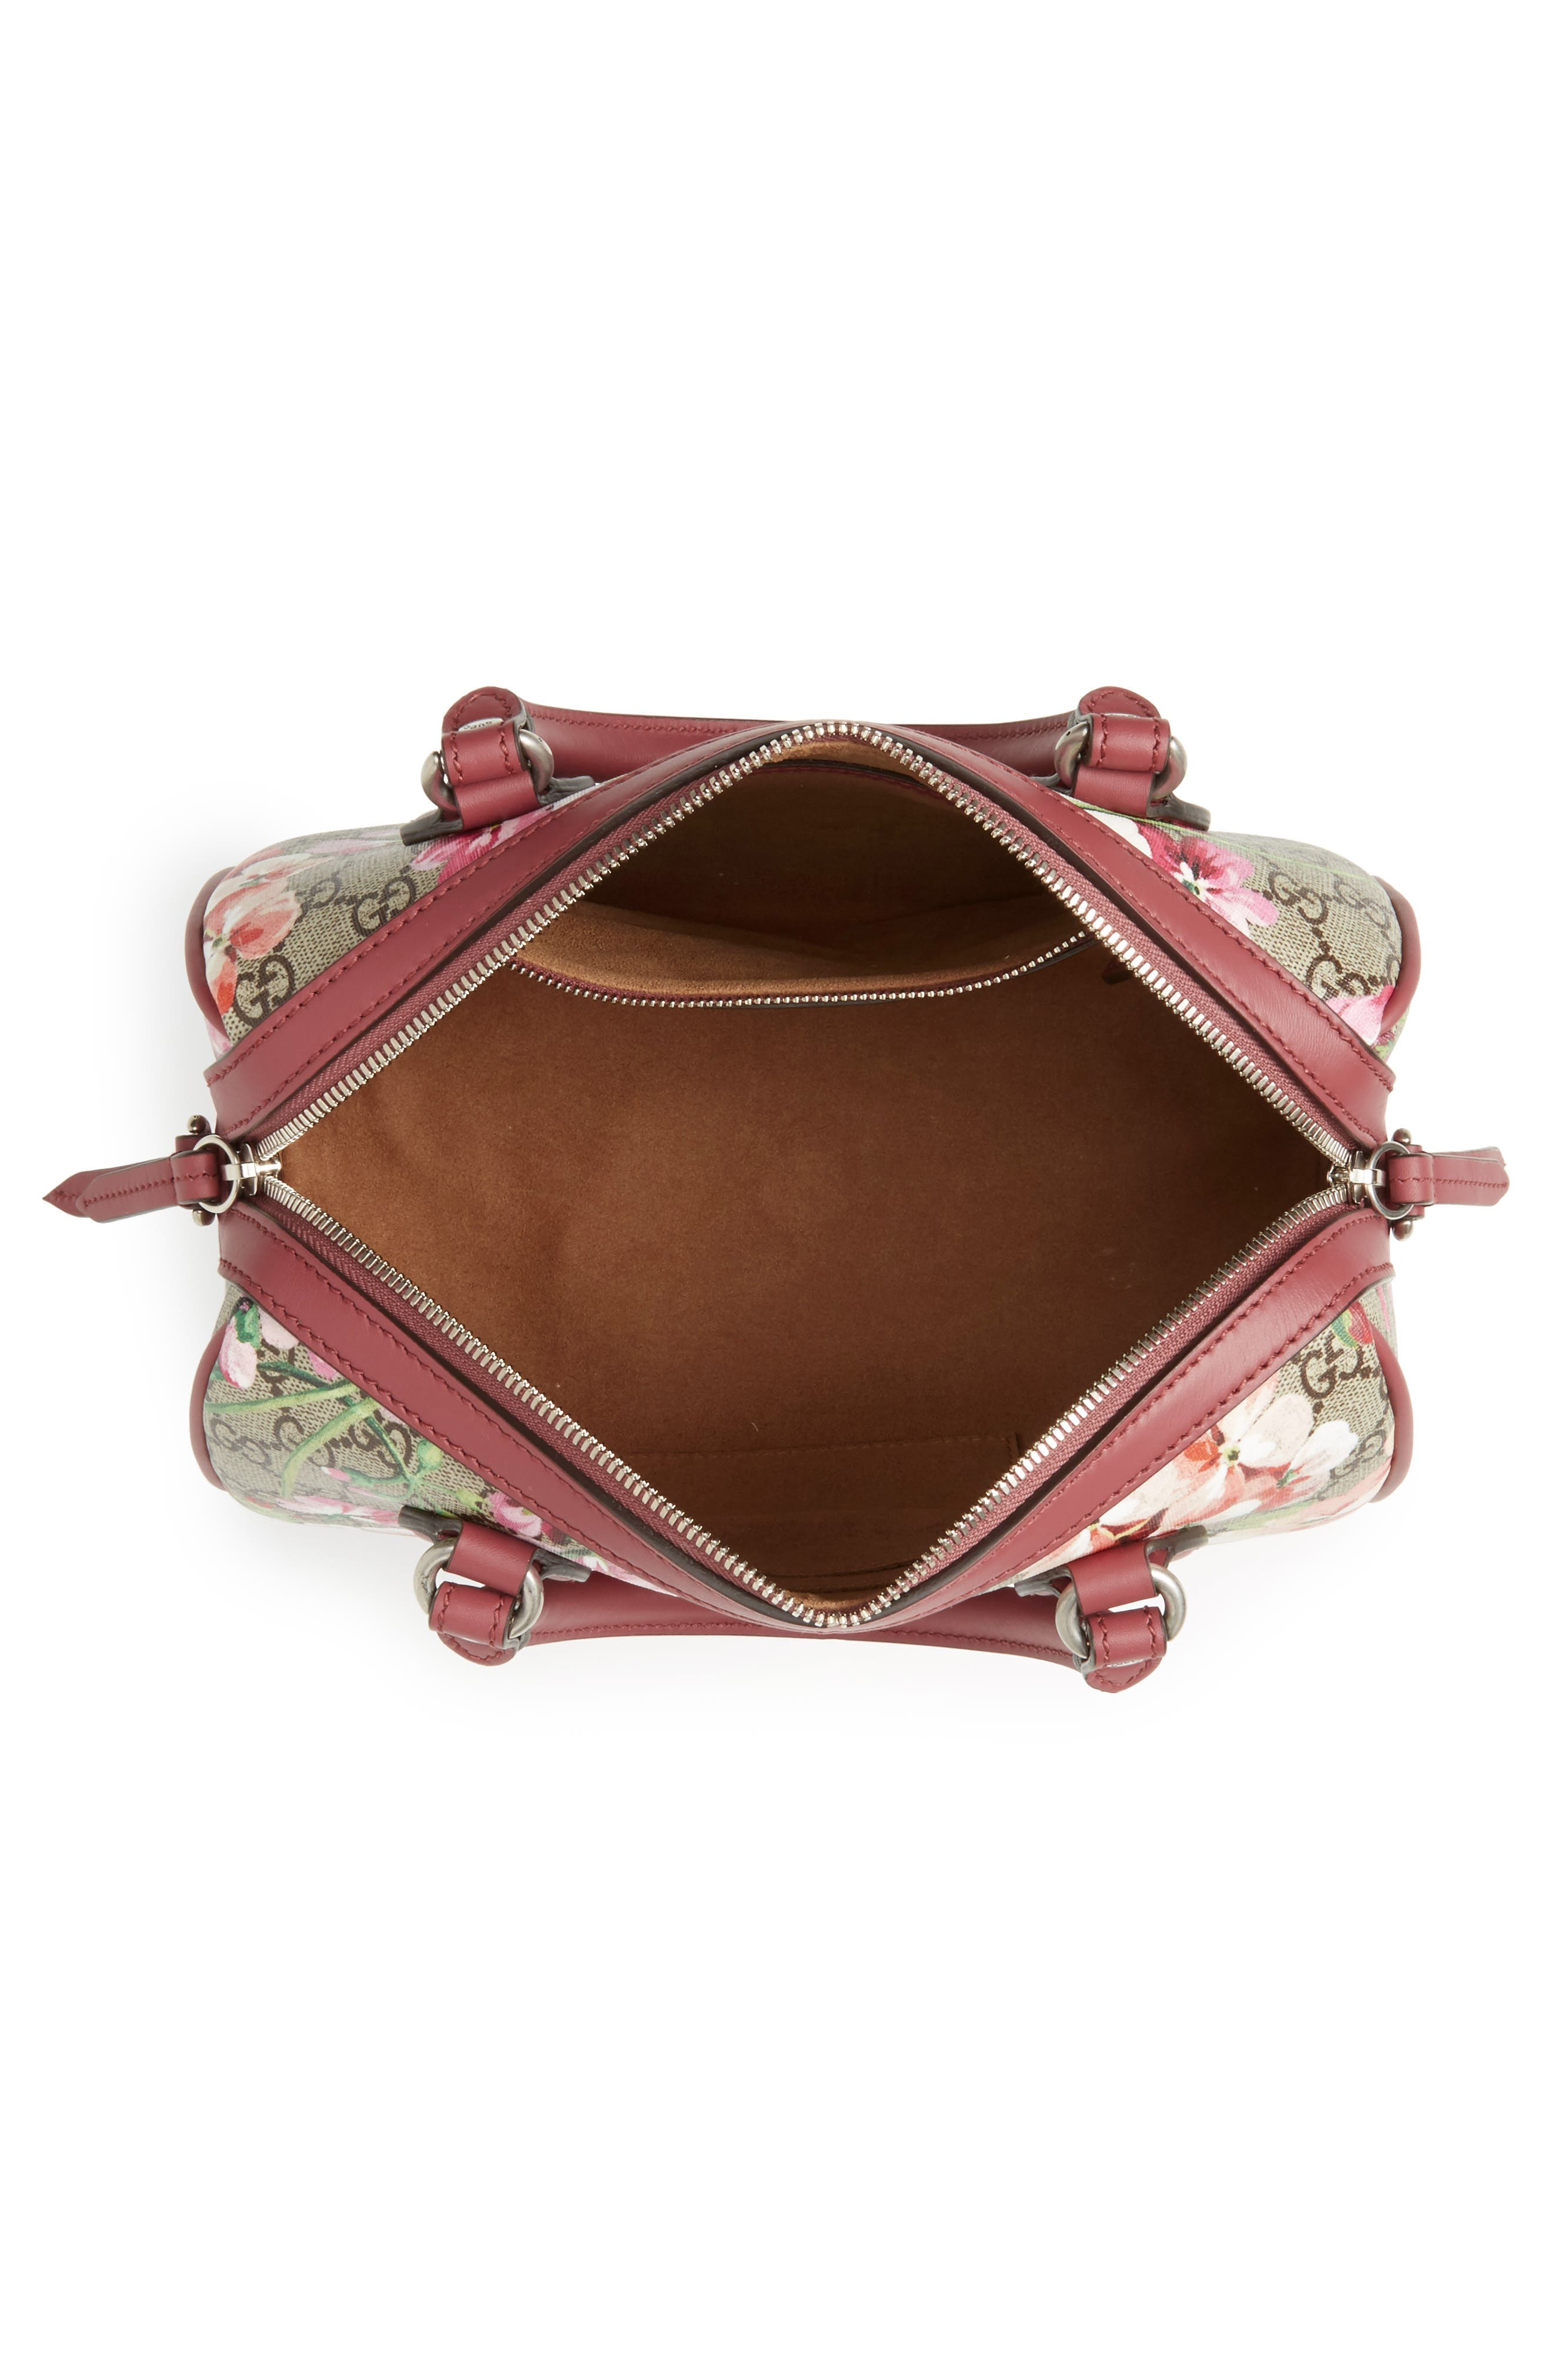 Small Blooms Top Handle GG Supreme Canvas Bag,                             Alternate thumbnail 6, color,                             Multi/Dry Rose